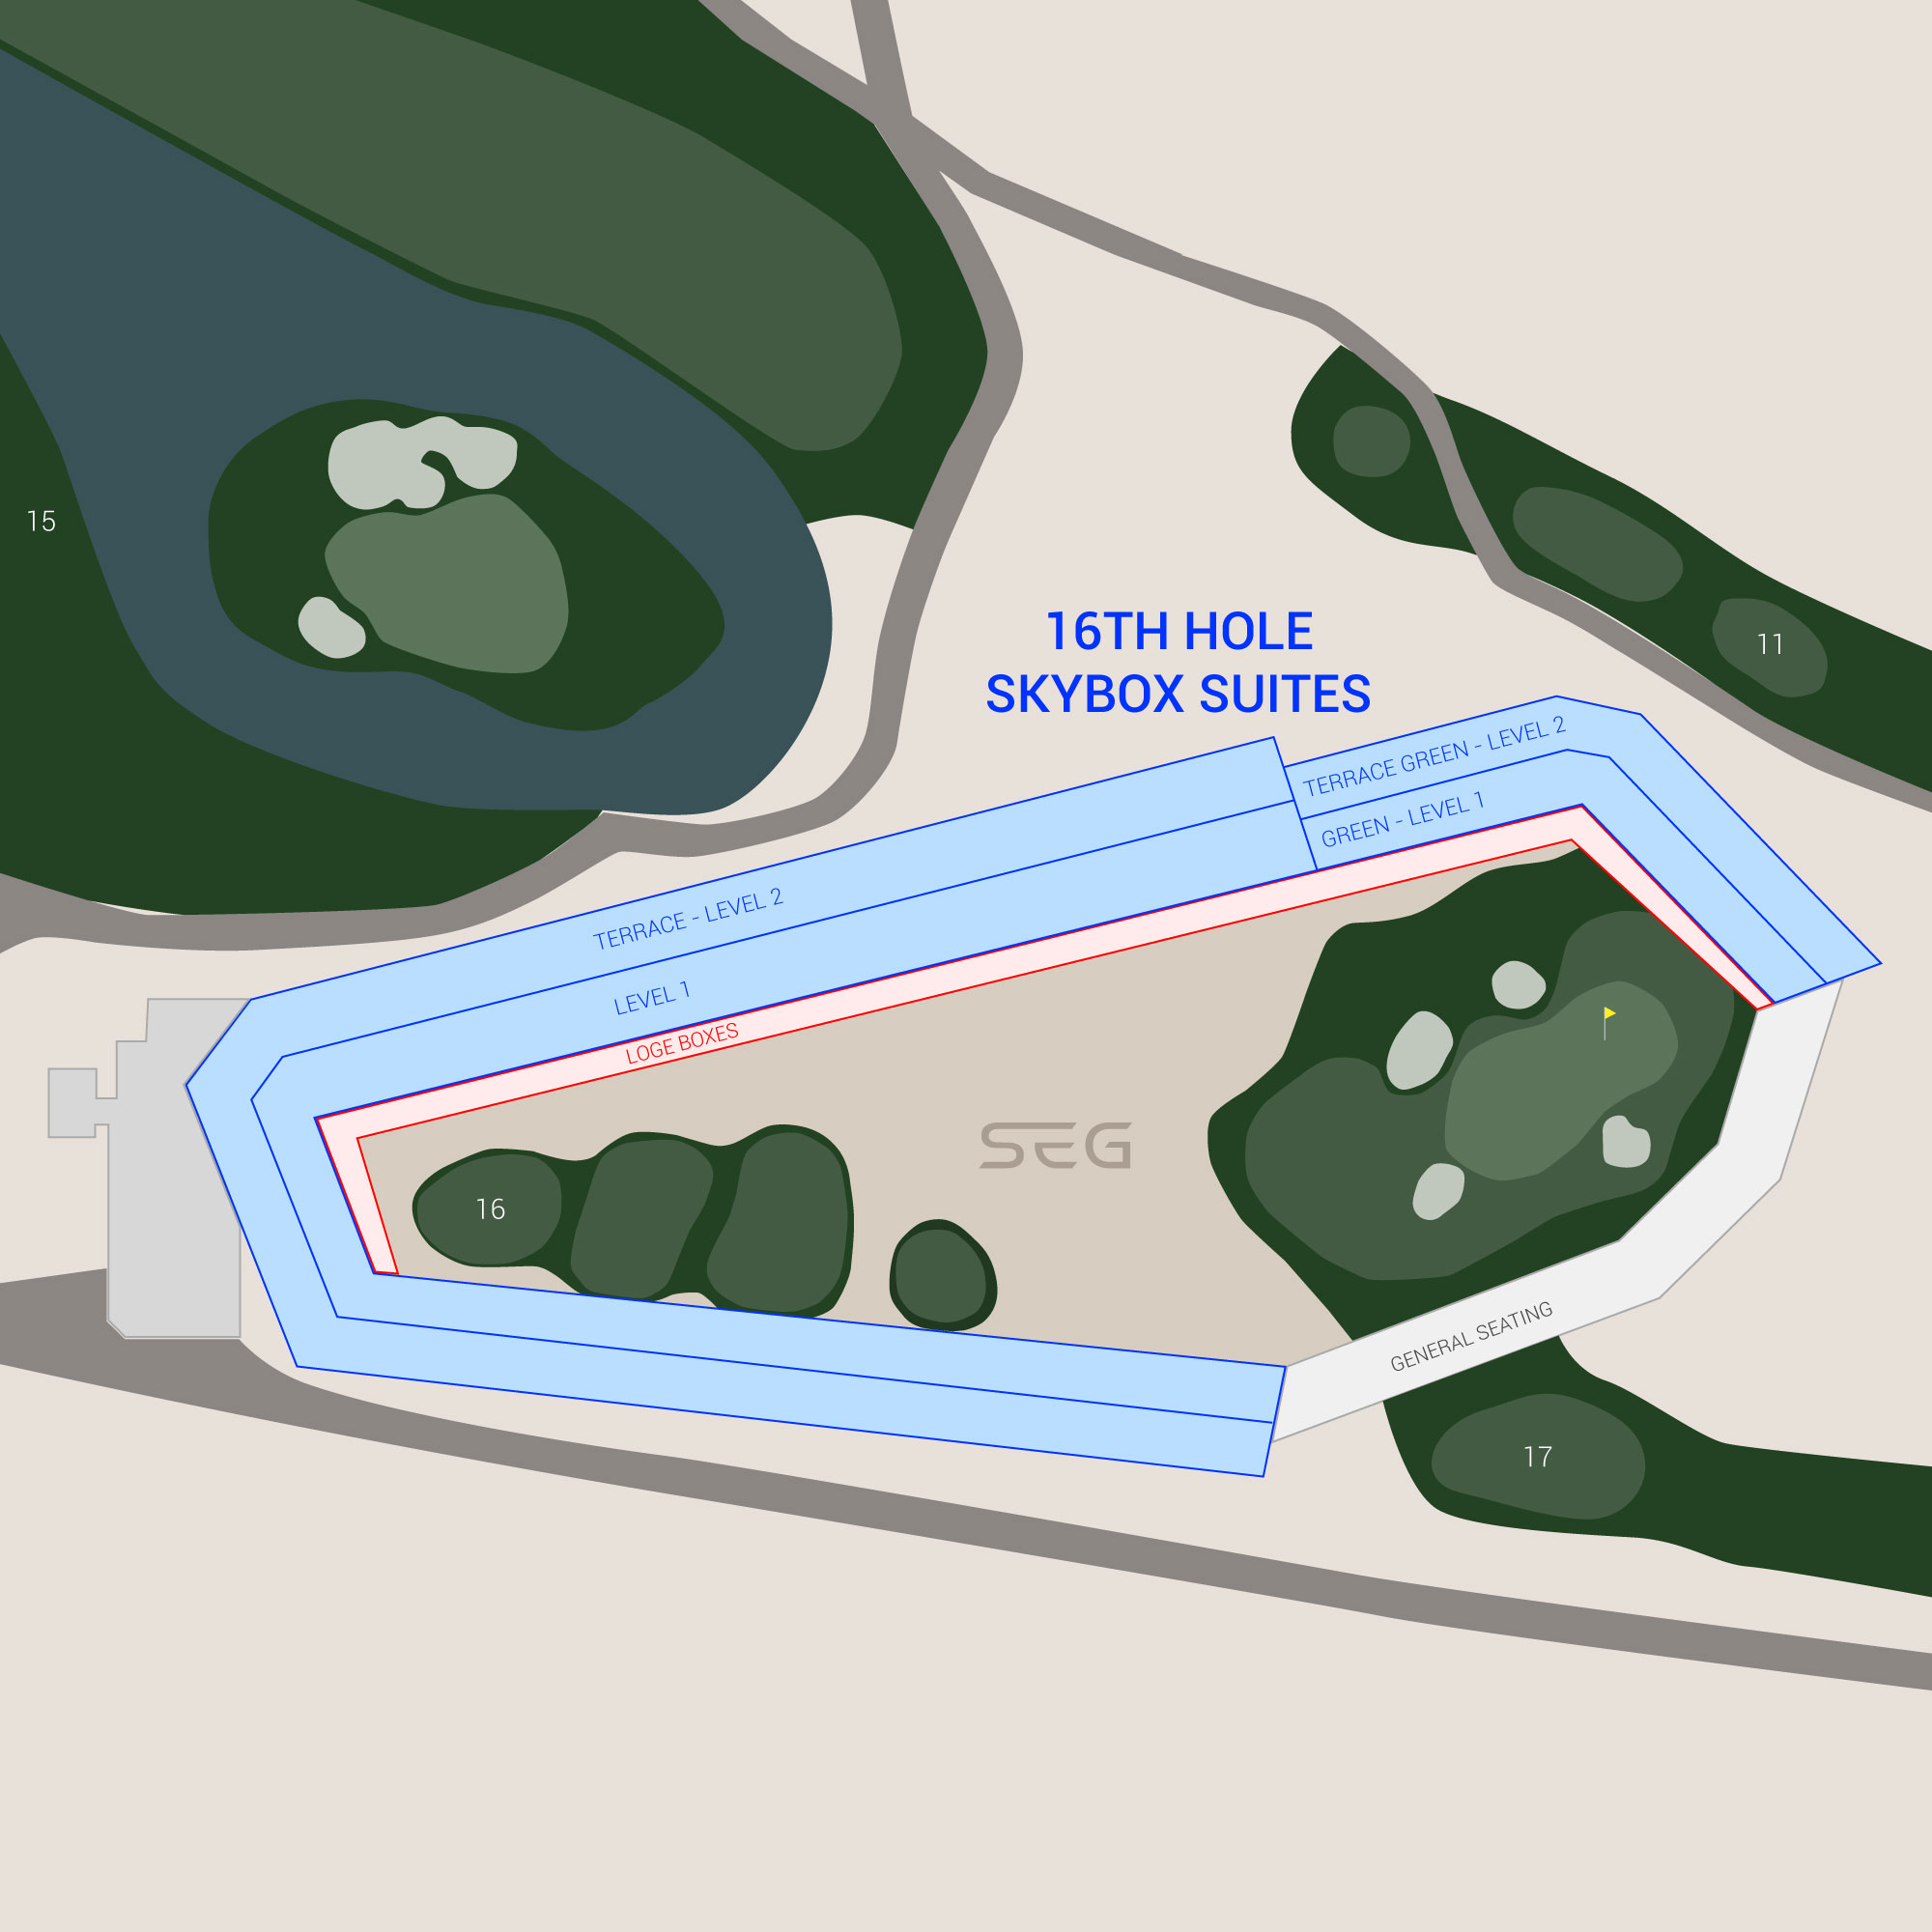 TPC Scottsdale /  Suite Map and Seating Chart